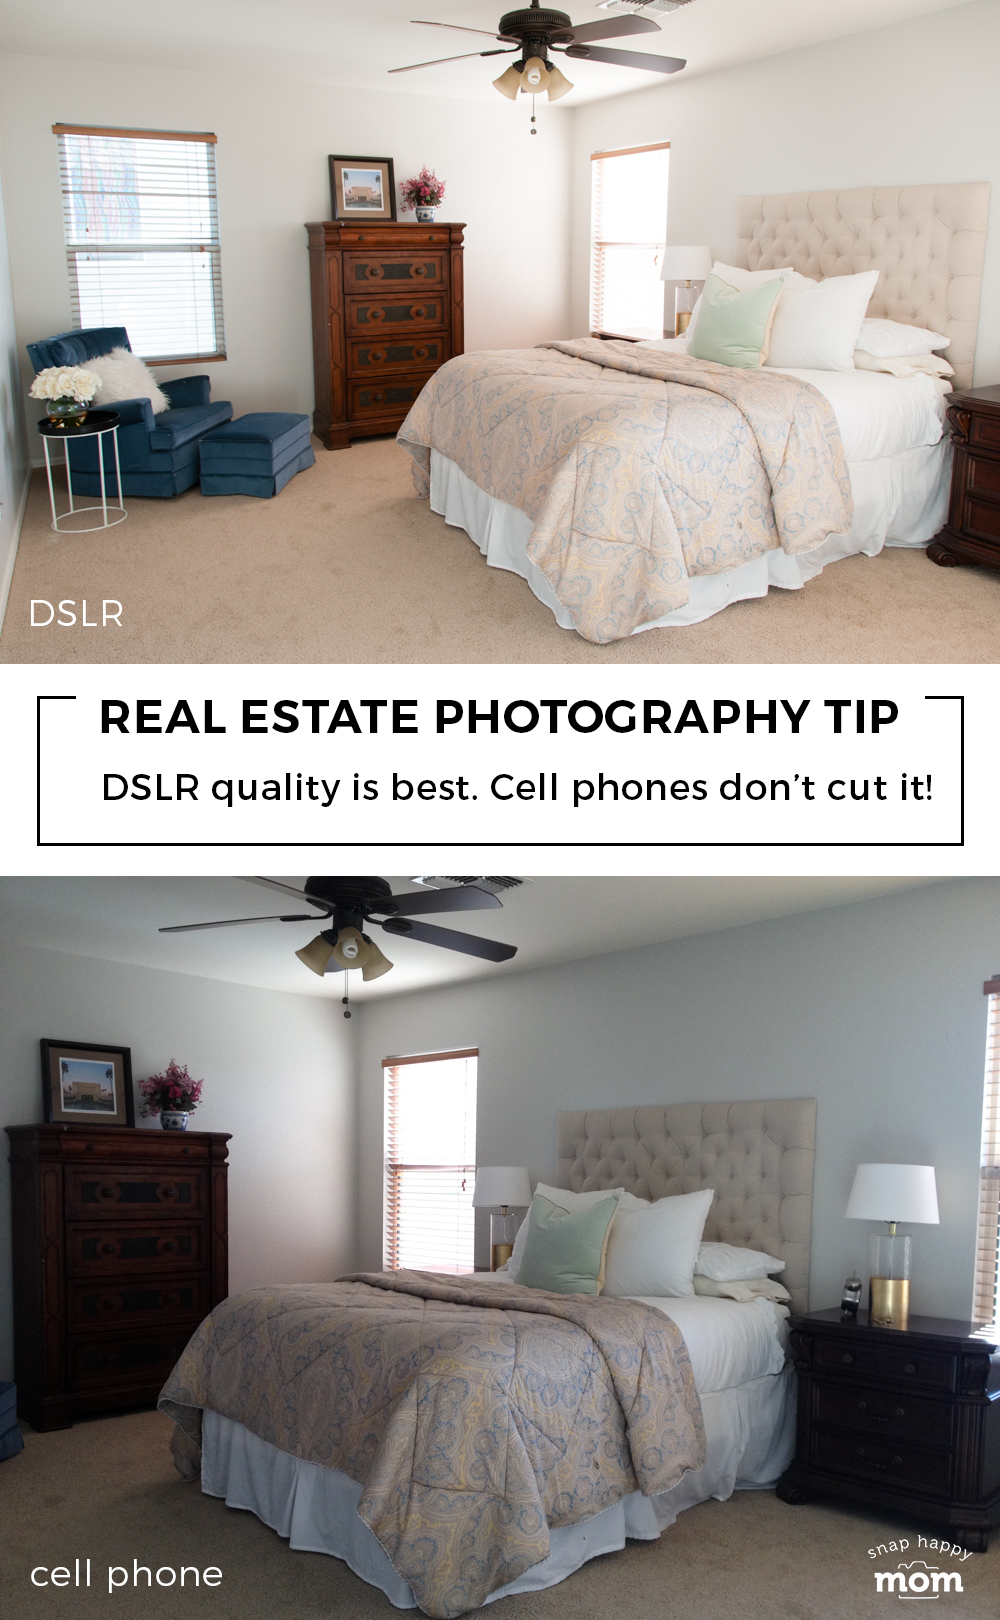 Real Estate Photography Tip: Use a DSLR for the best quality. Cell phone snaps don't cut it!